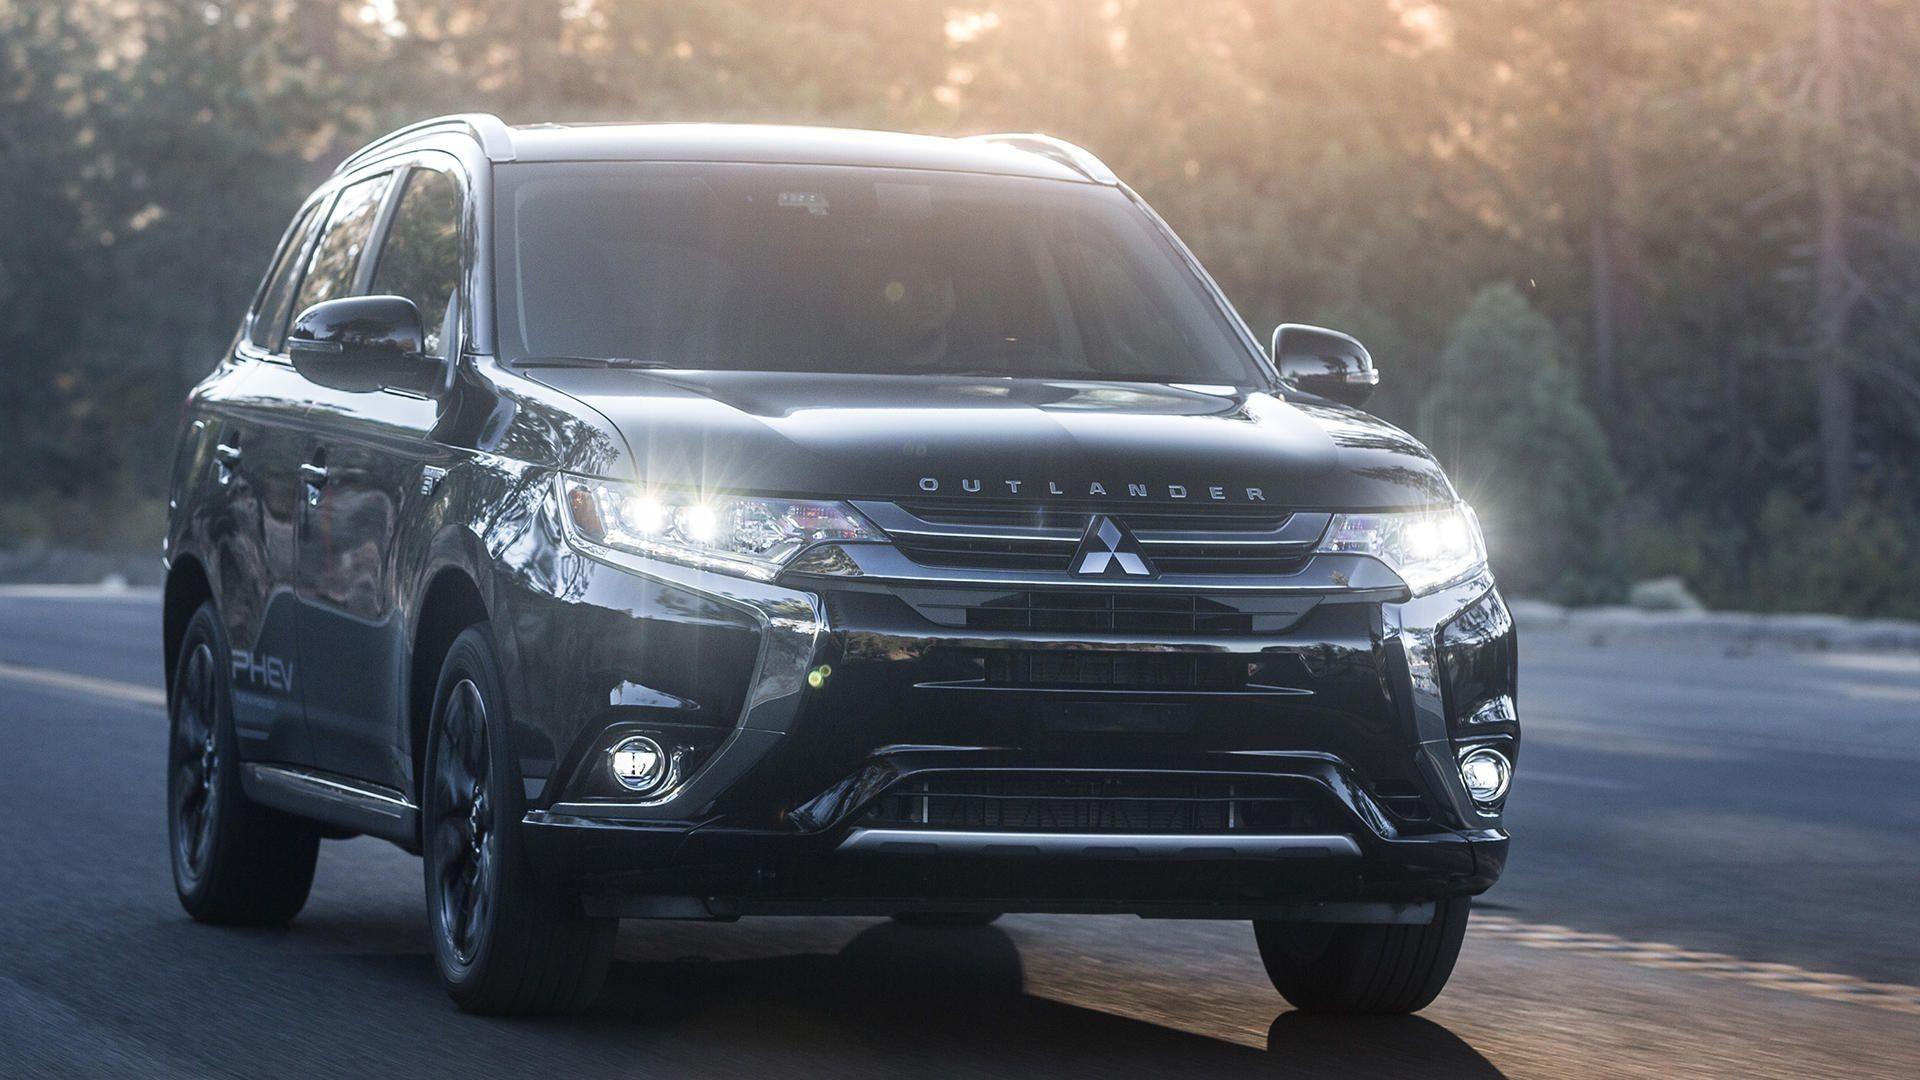 2019 Mitsubishi Outlander Sel Specs And Review Mitsubishi Outlander Sport Mitsubishi Outlander Outlander Sport